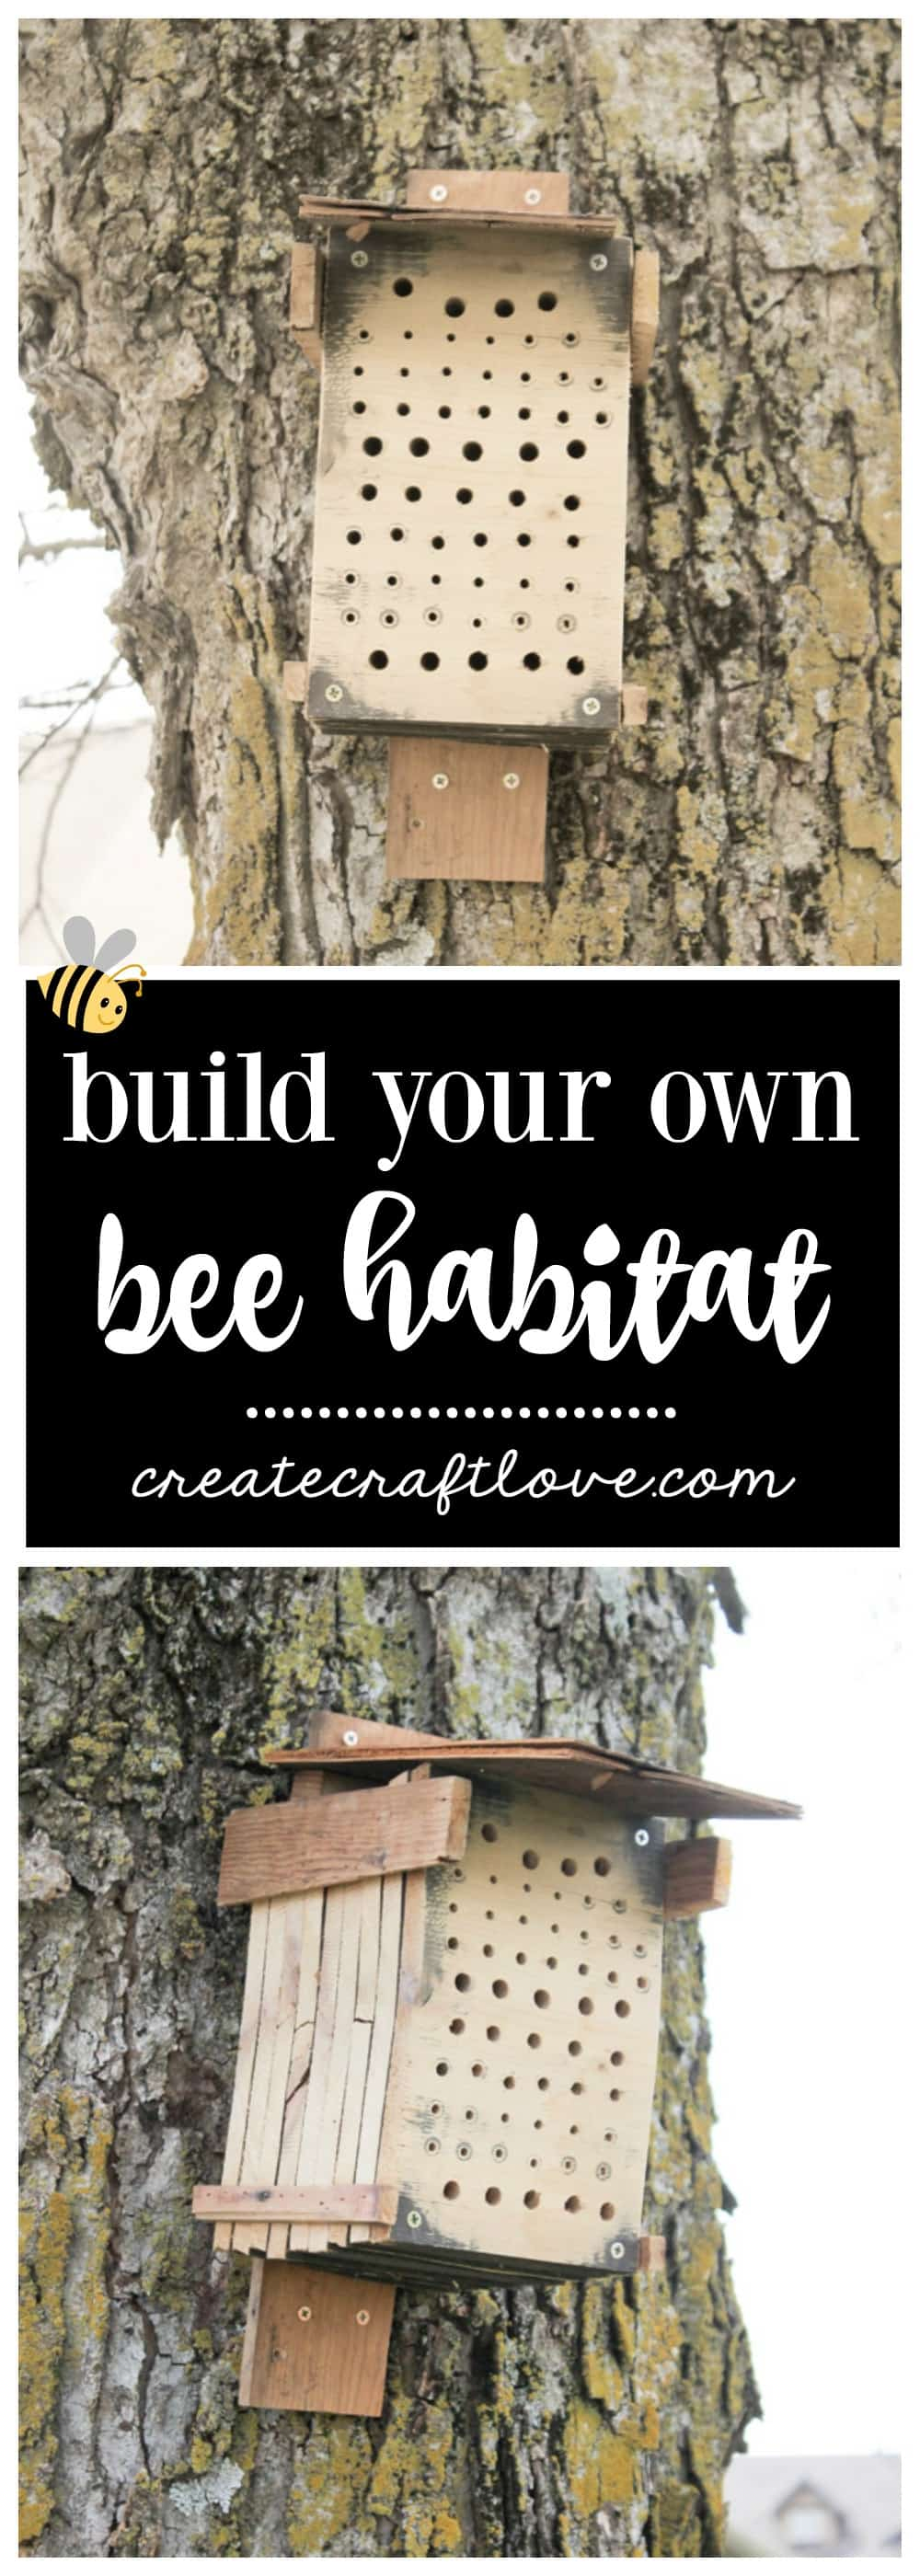 I'm sure many of you have heard about declining bee populations and the dreaded colony collapse syndrome, so even if you don't have a garden, this is a DIY Bee Habitat can help protect our native species.